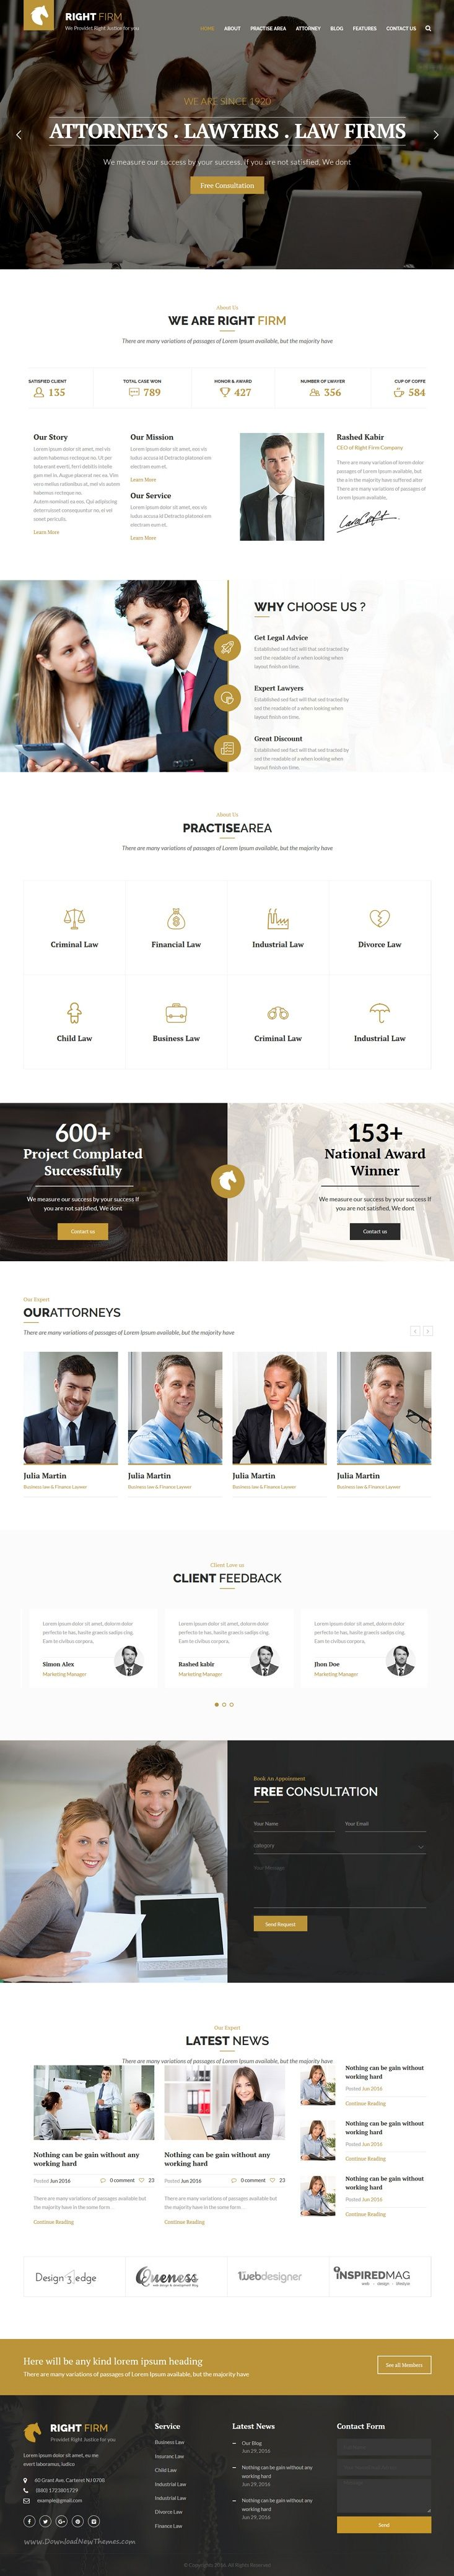 Right firm is a wonderful responsive 3in1 #WordPress theme for #advocate, legal advisers, #lawyers, attorneys, barristers or law firms website download now➩ https://themeforest.net/item/right-firm-law-firm-wordpress-theme/16922264?ref=Datasata